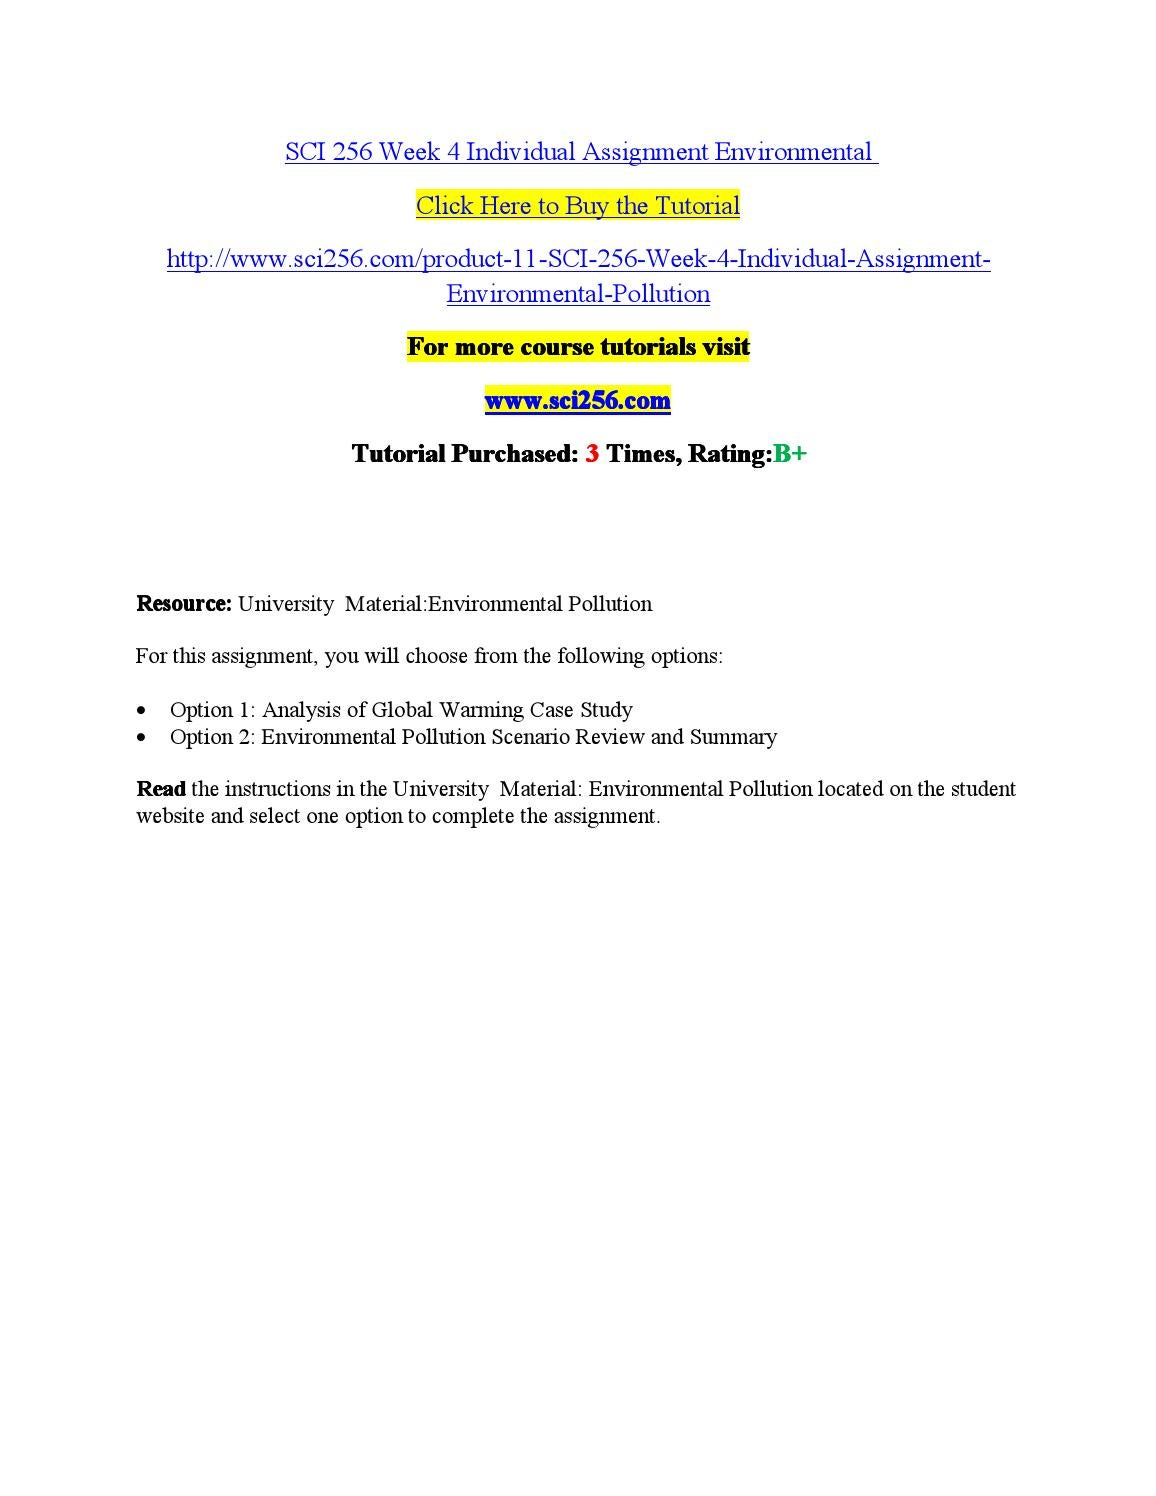 assignment on environmental pollution pdf